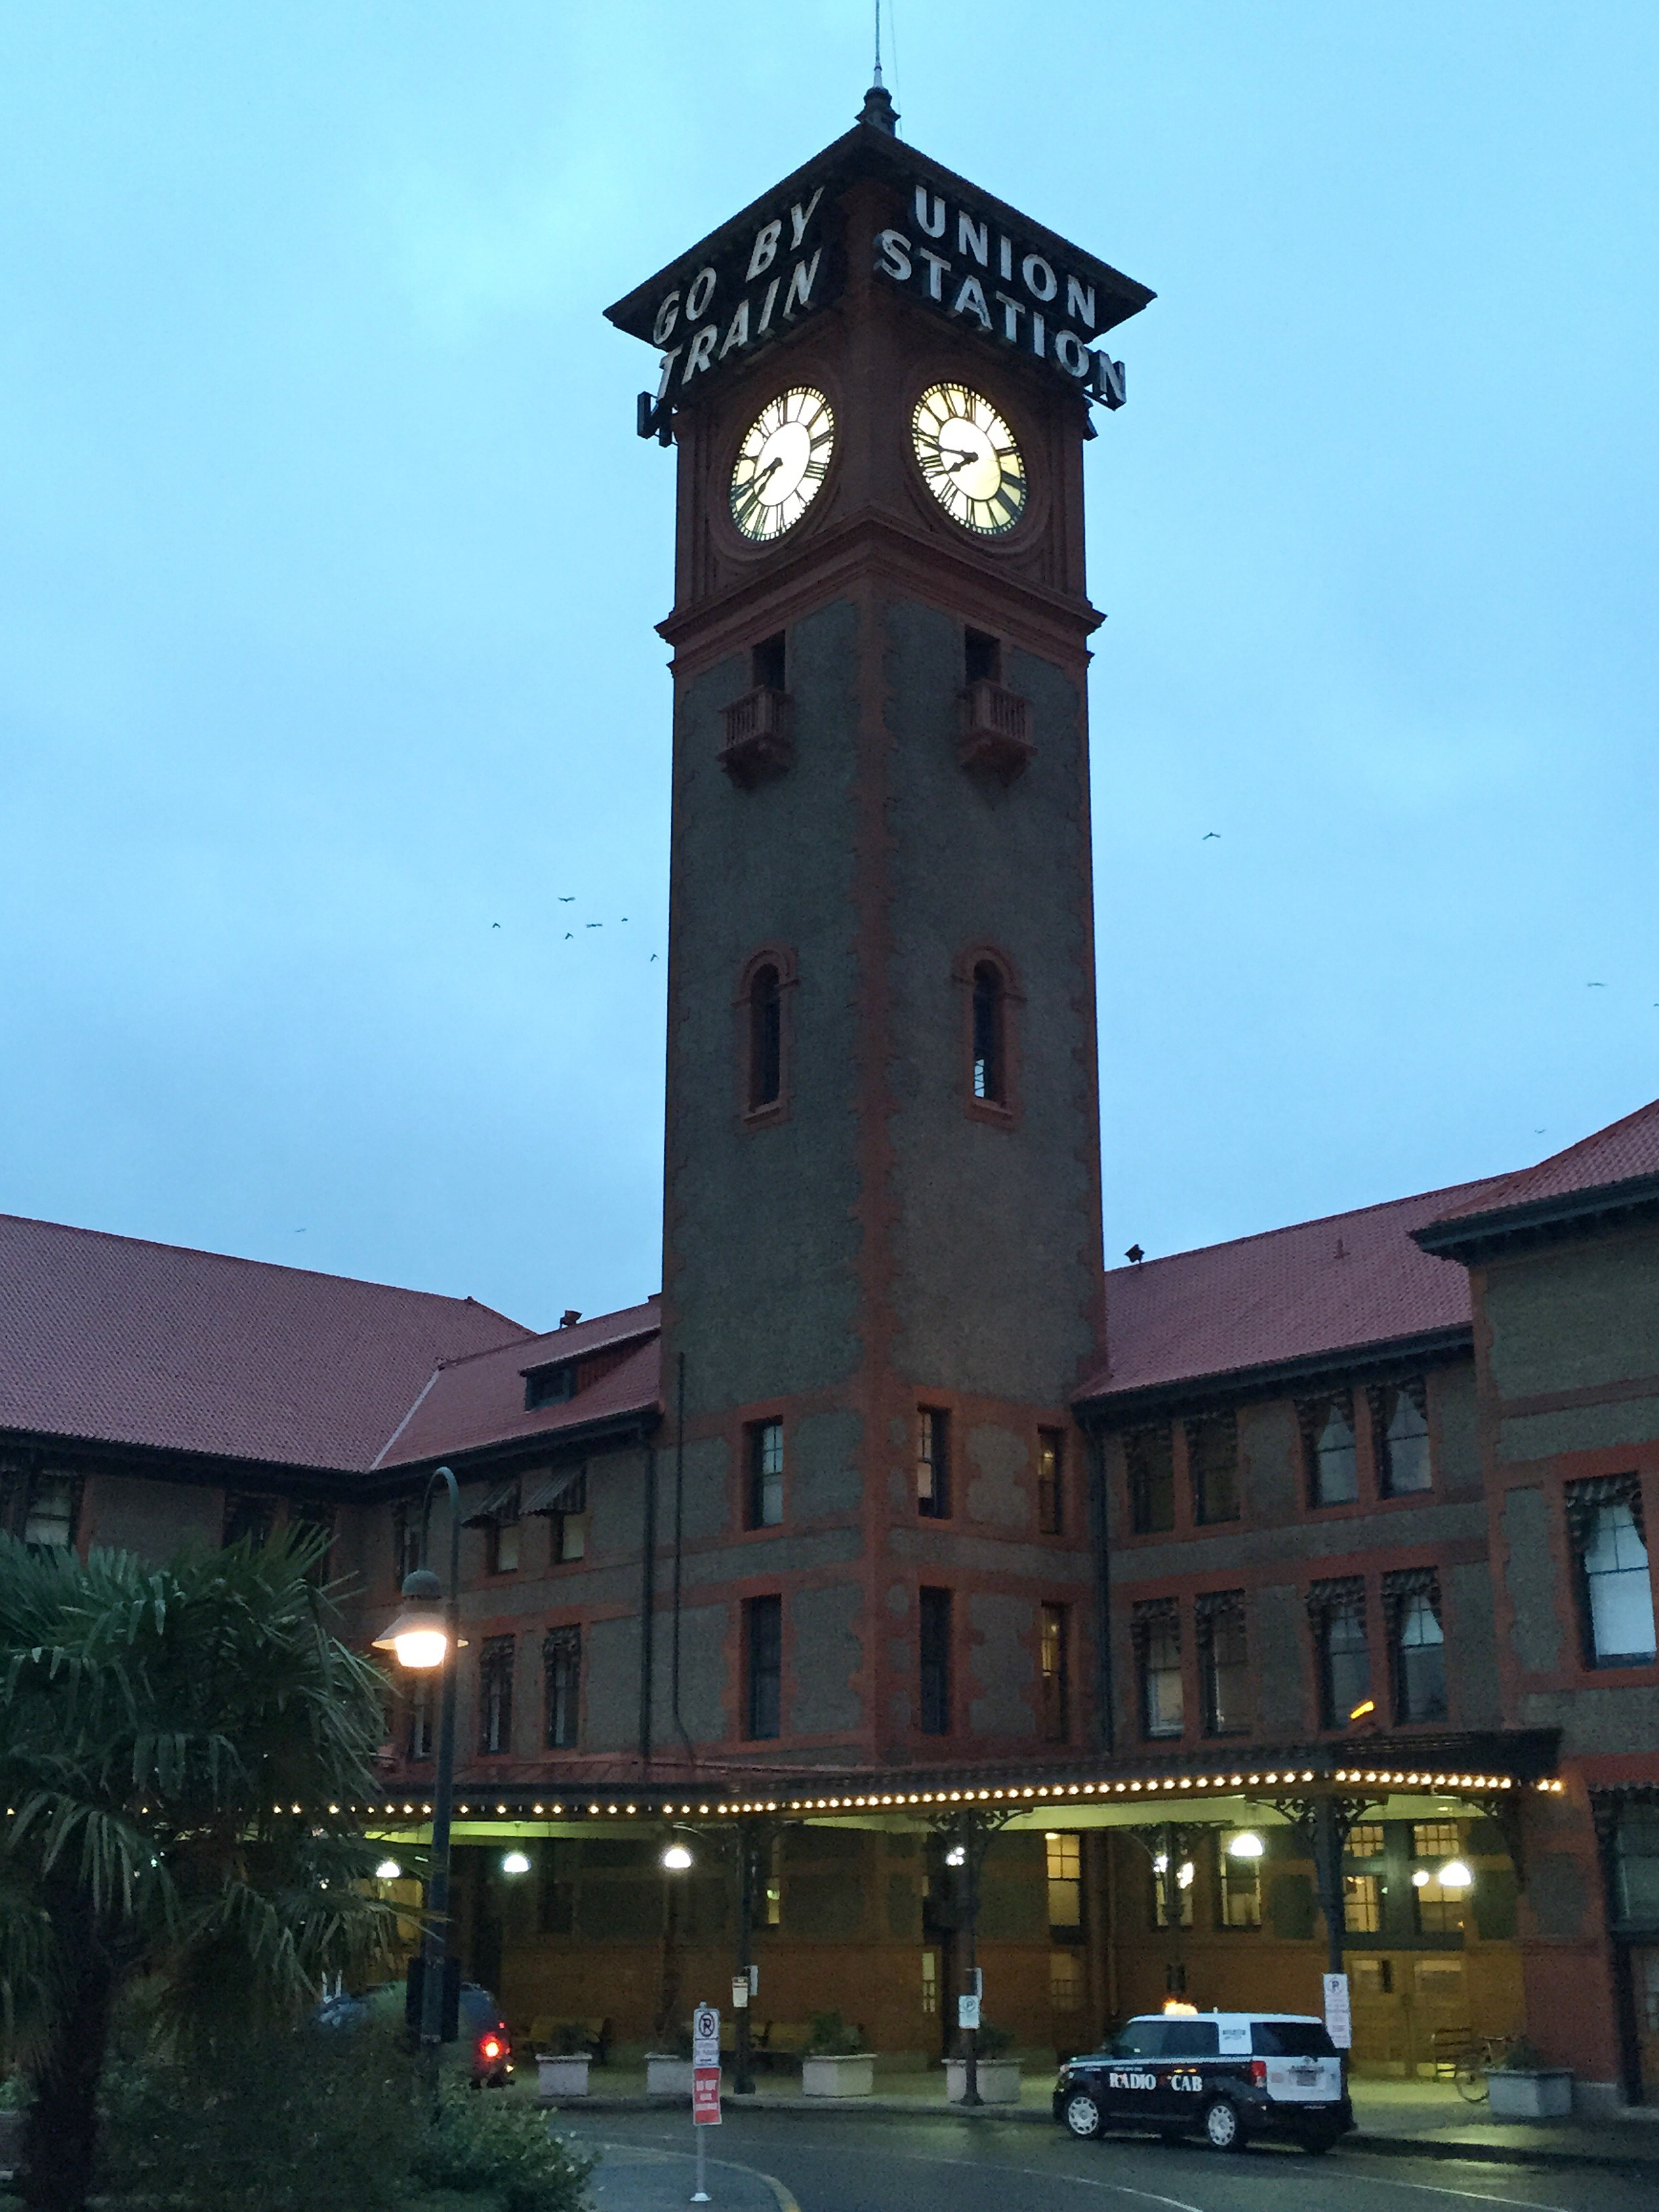 Union Station in Portland!